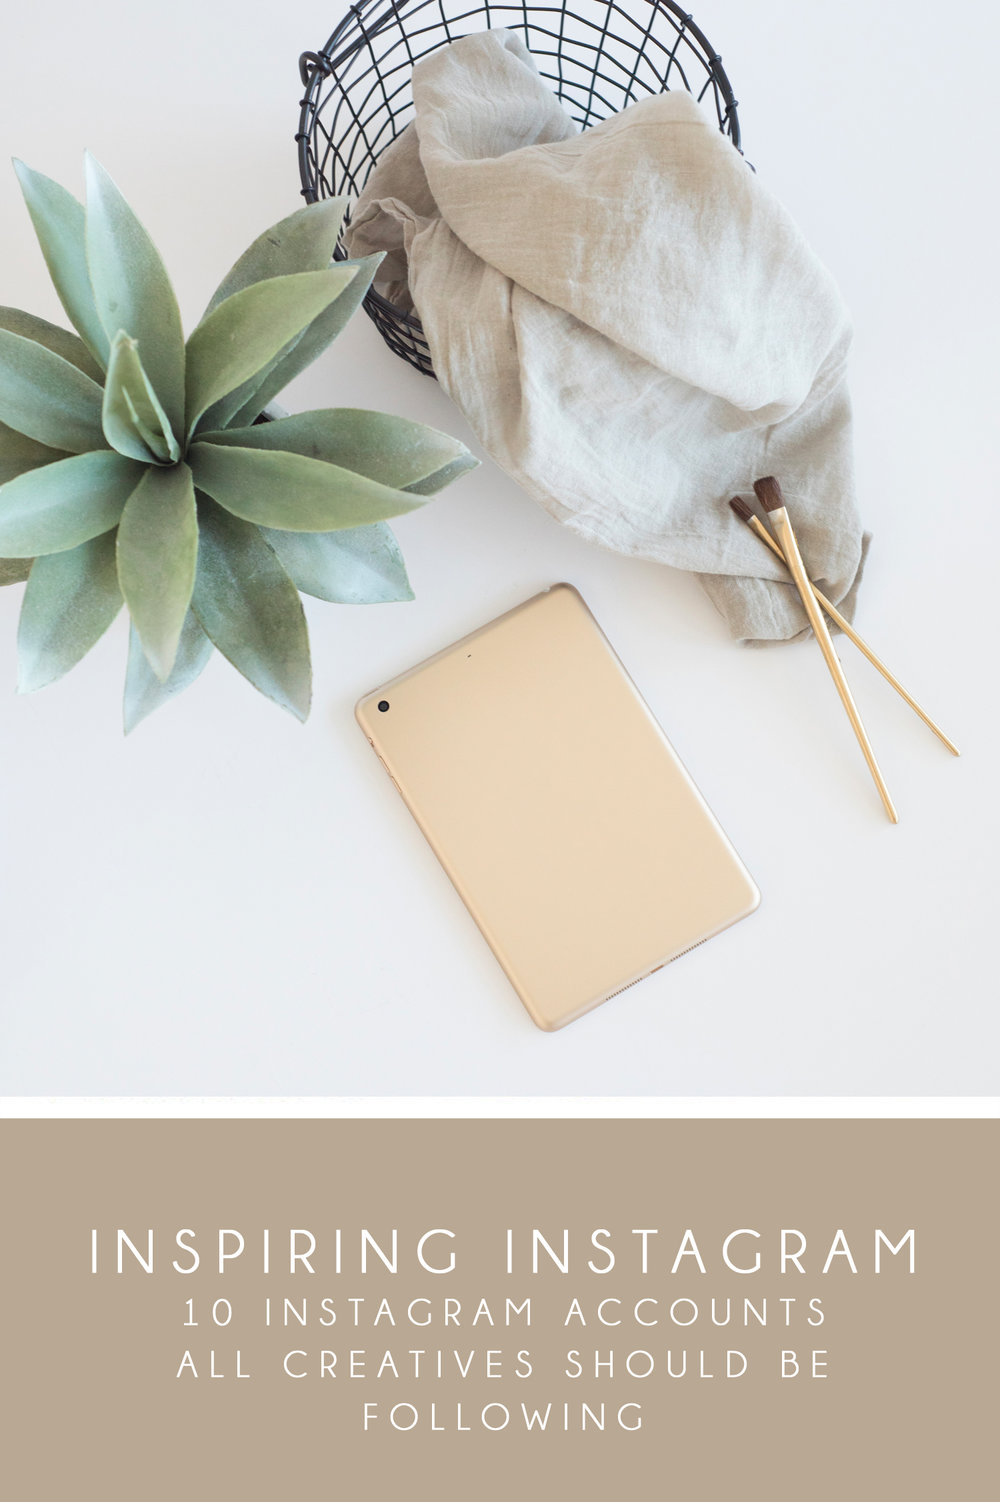 10 Inspirational Instagram Accounts to Follow | Aceti Design Co.